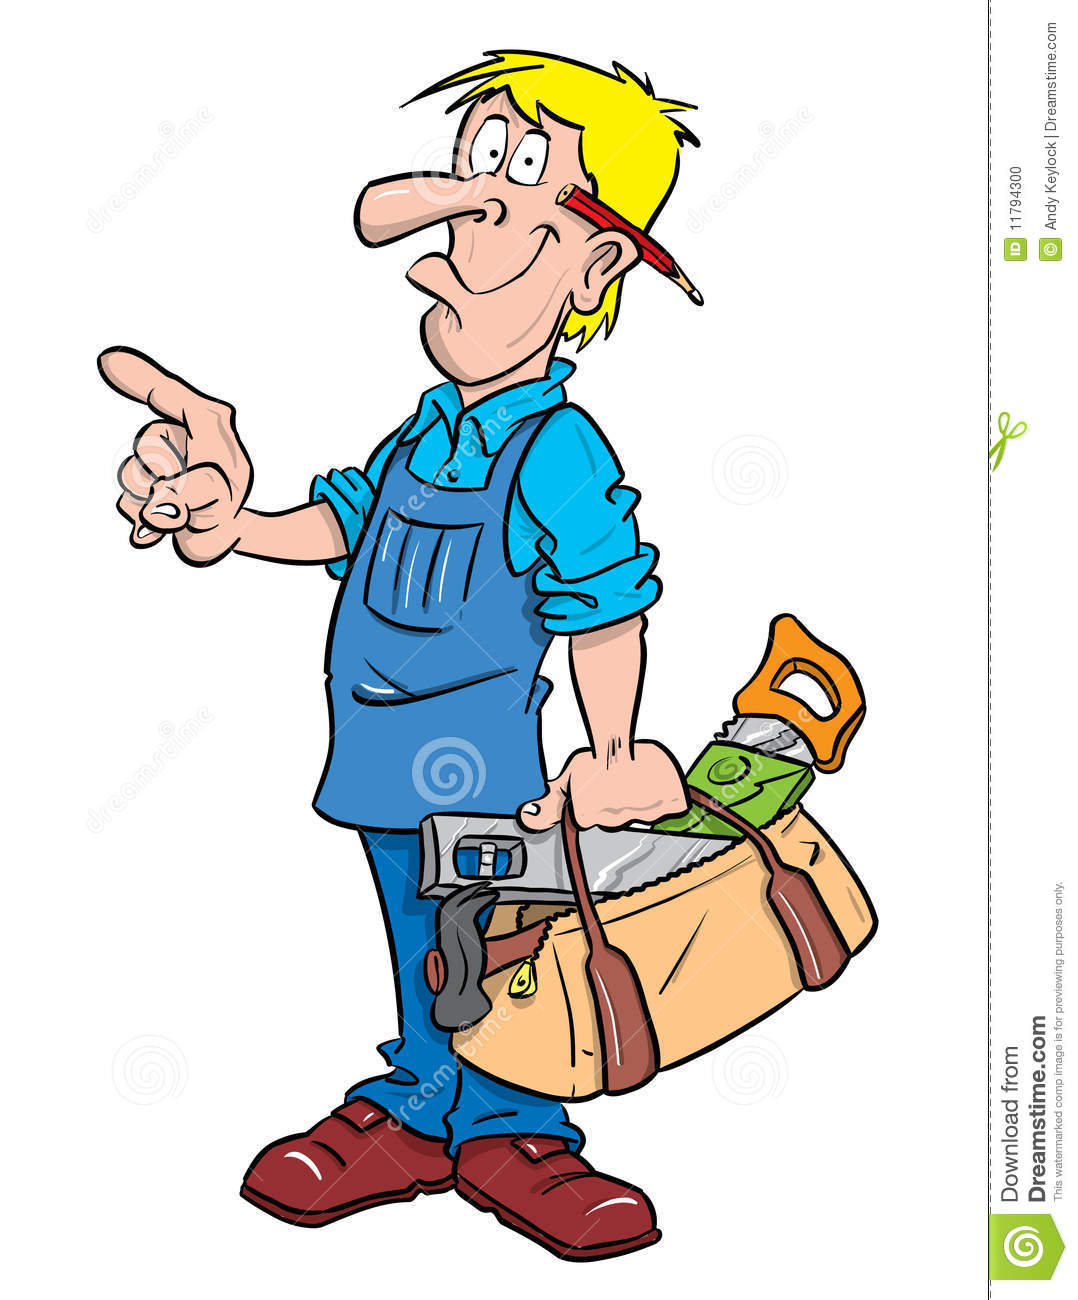 Carpenter or Handyman | Clipart Panda - Free Clipart Images